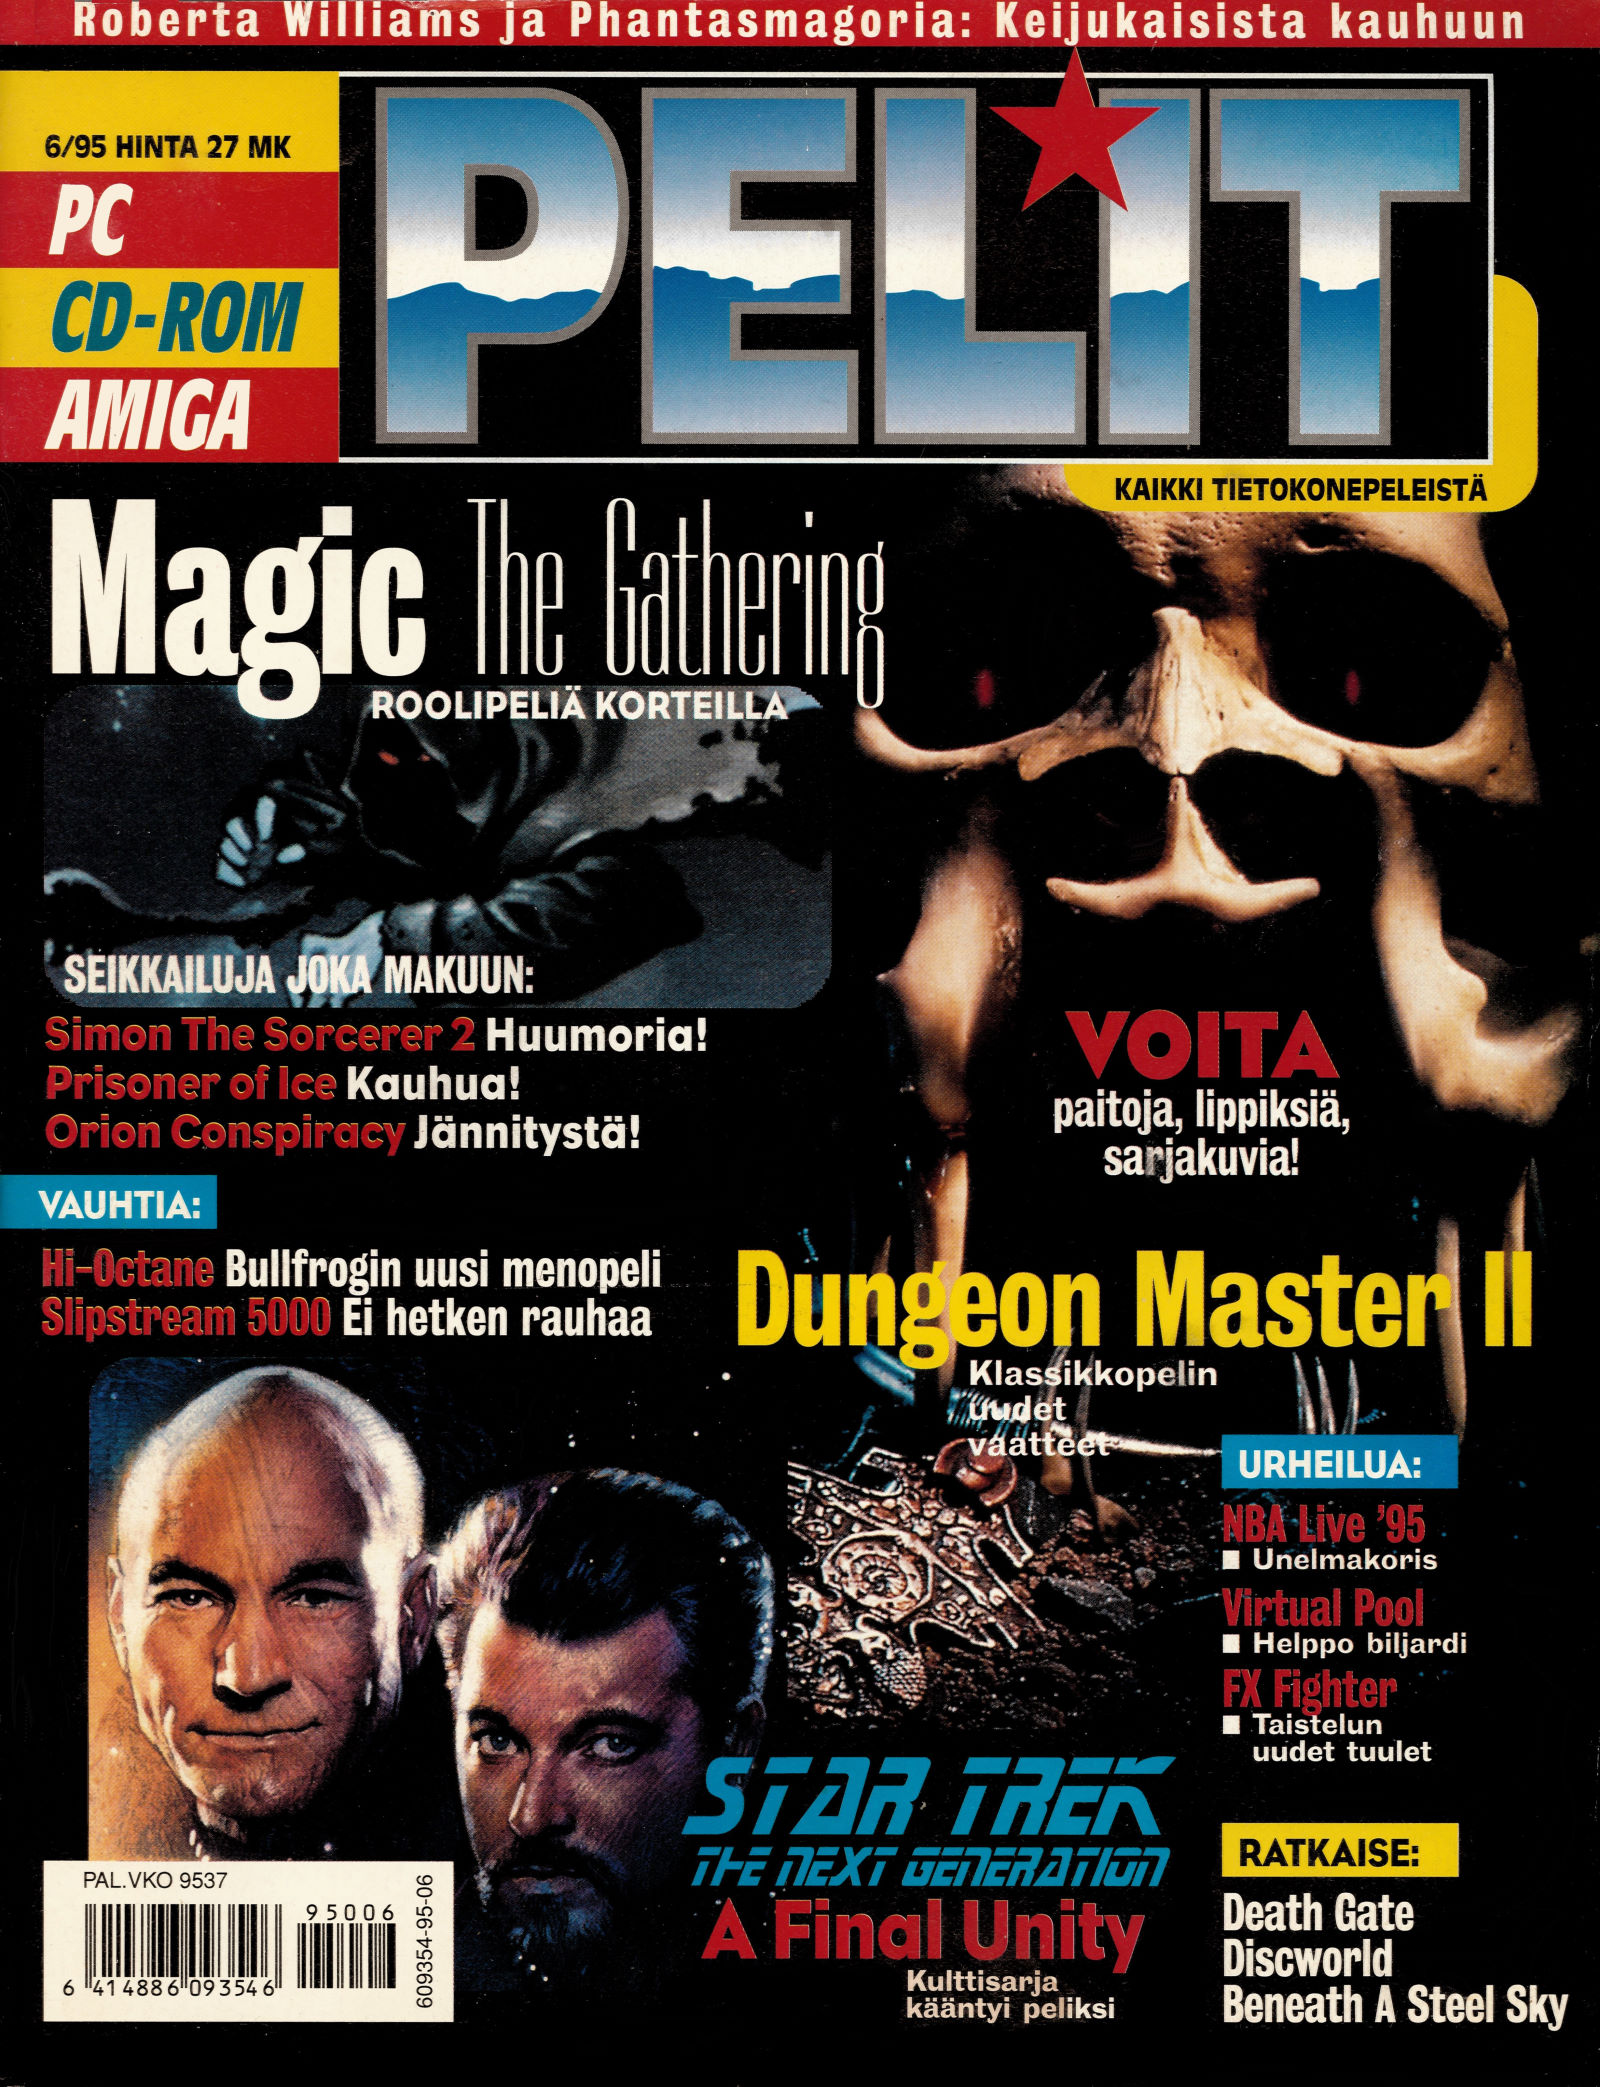 Dungeon Master II for PC-Amiga Cover published in Finnish magazine 'Pelit', June 1995, Page -